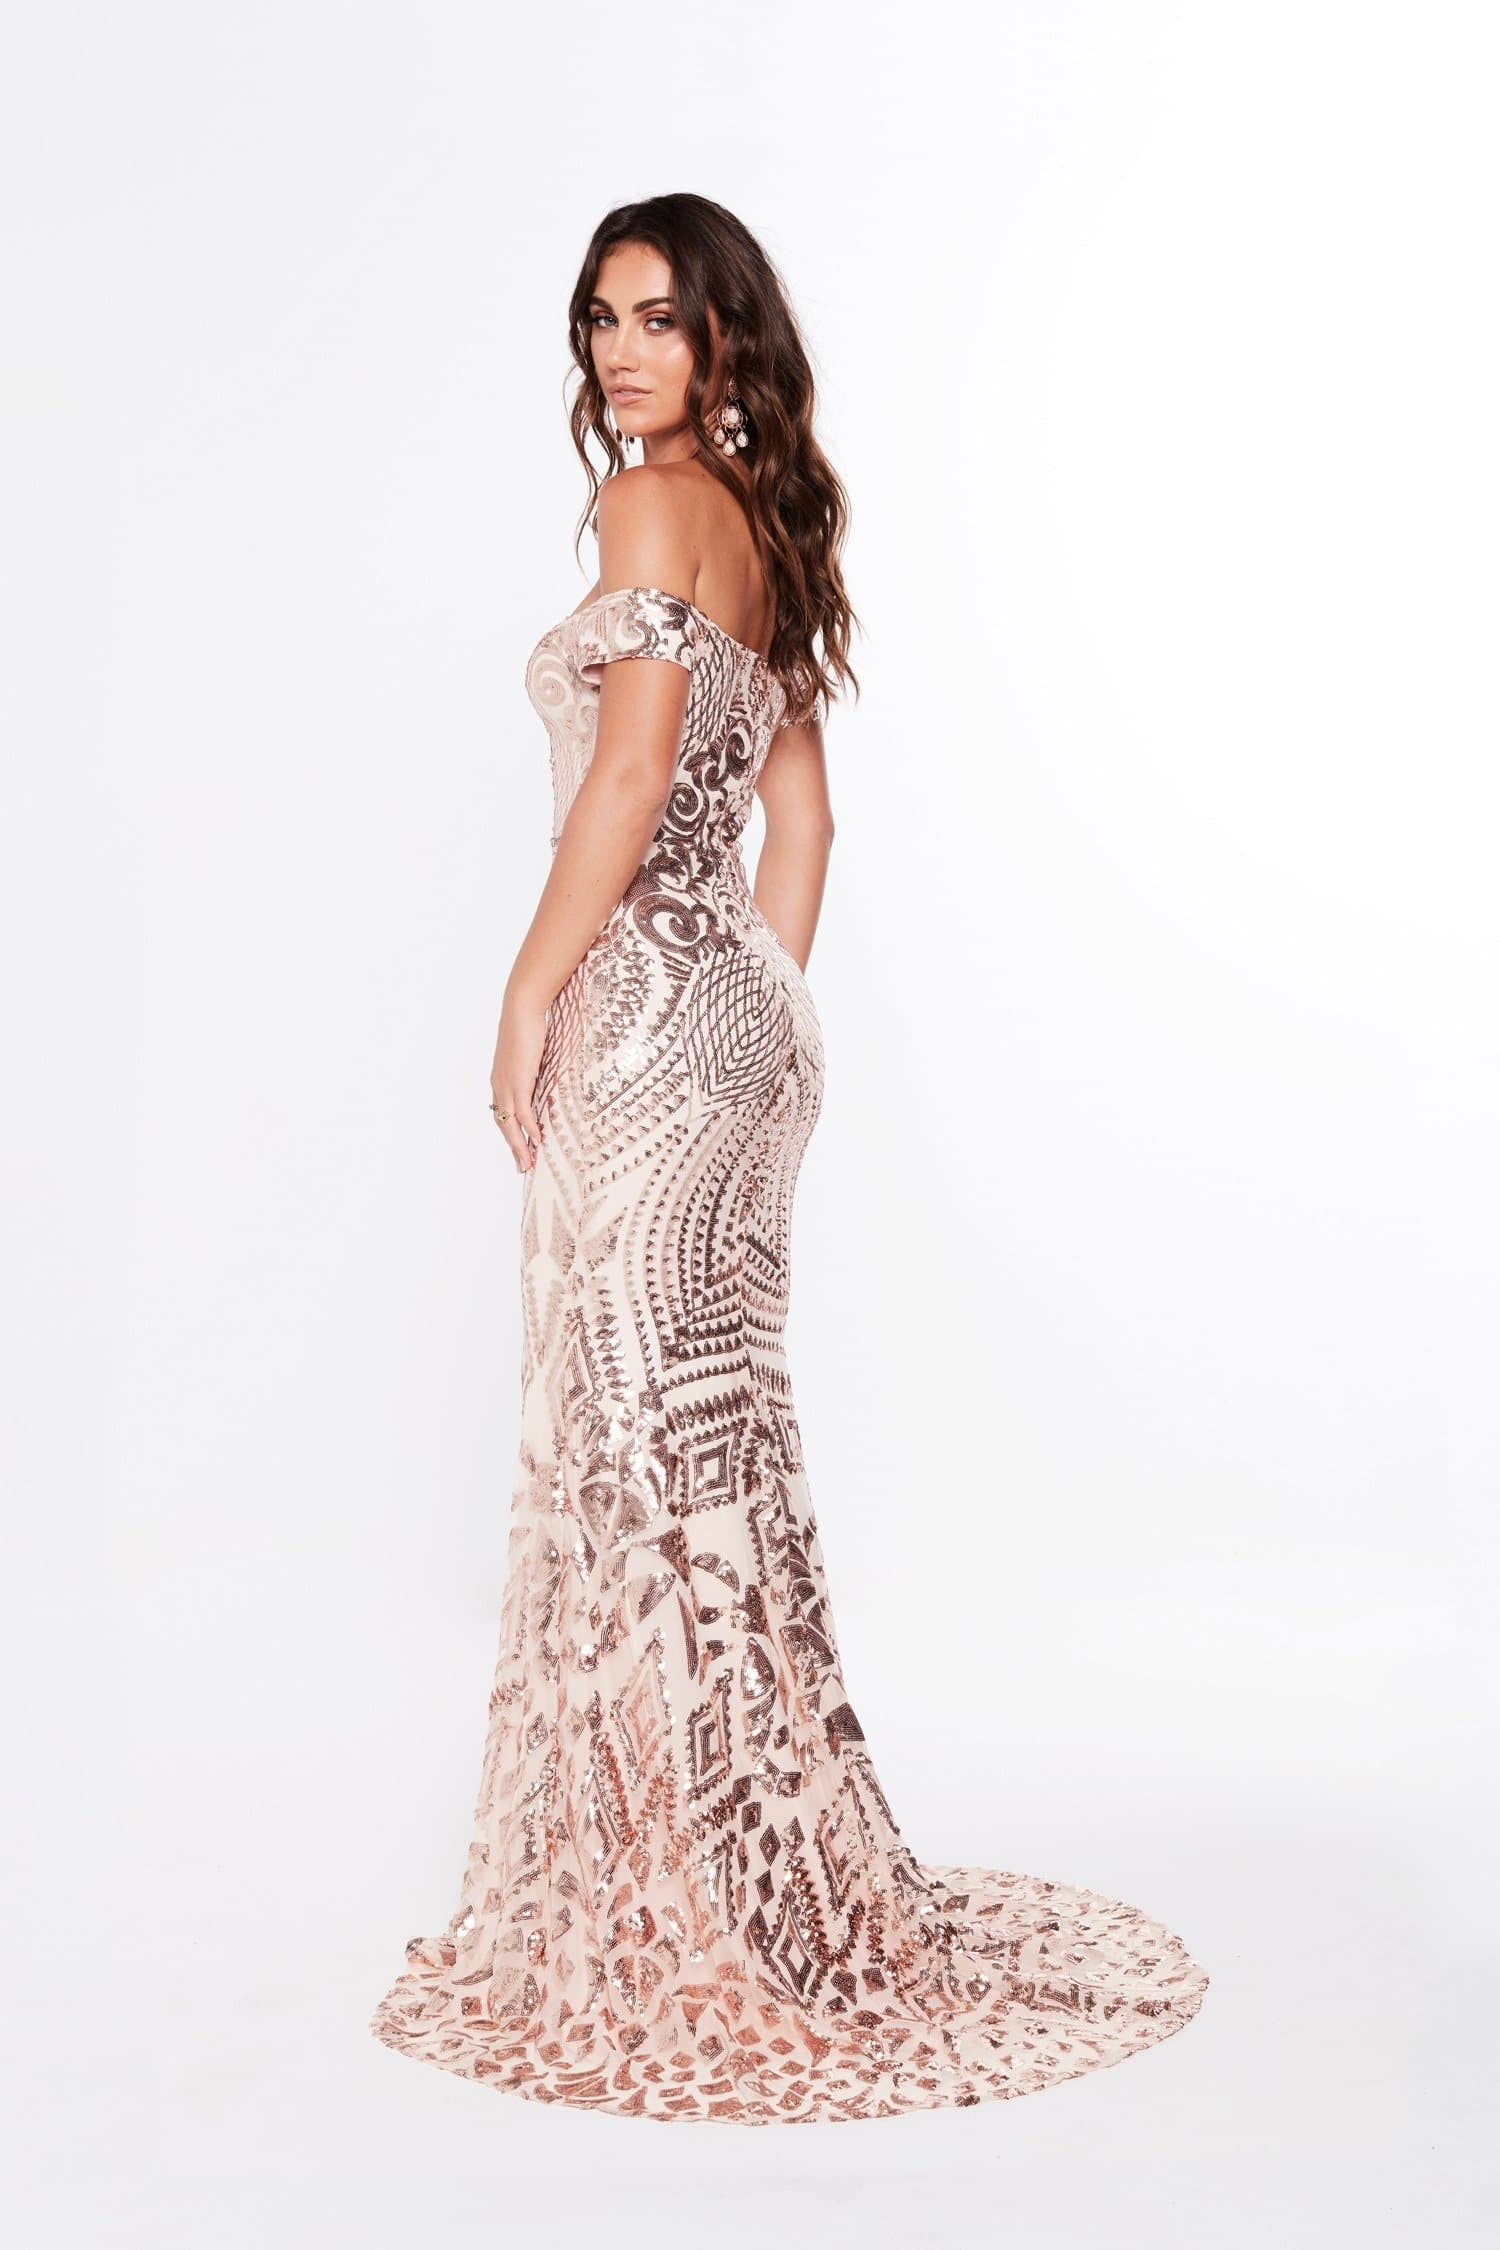 A&N Mia - Rose Gold Sequin Gown with Off-Shoulder Straps